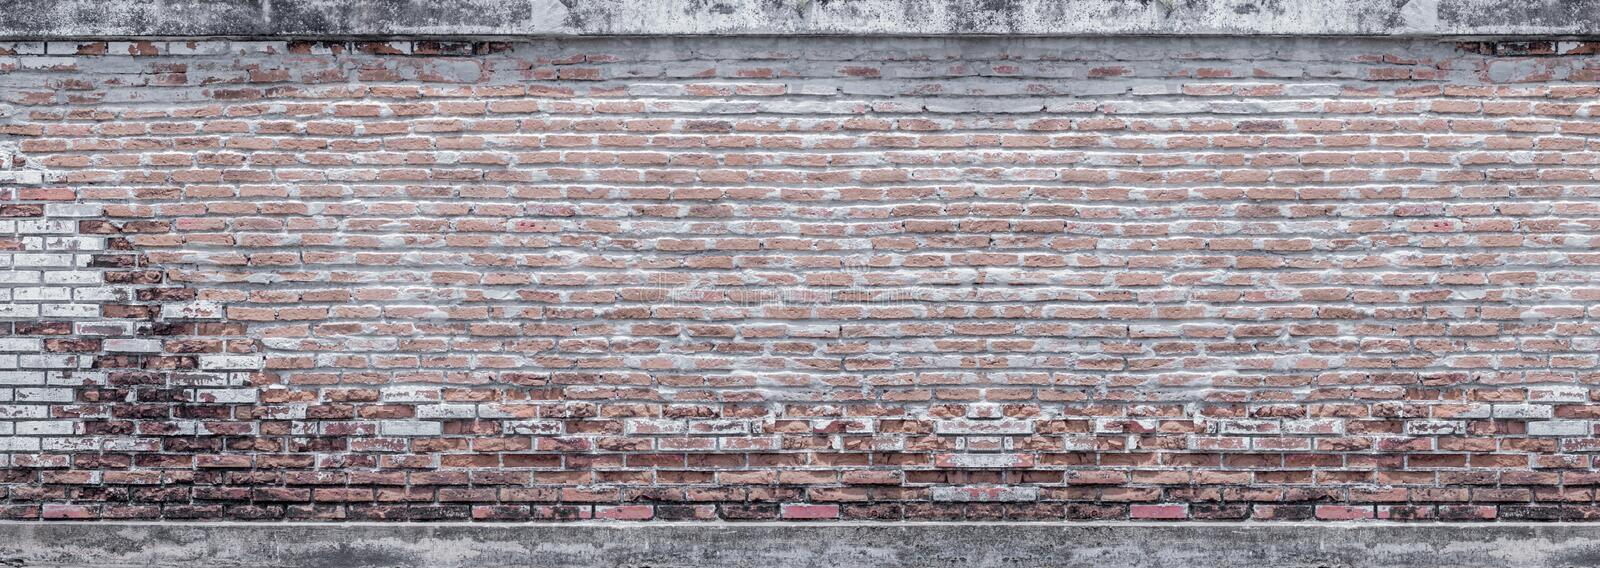 Wide old brick wall , vintage brick wall  in a background image. Wide old brick wall pattern , vintage brick wall  in a background image royalty free stock images